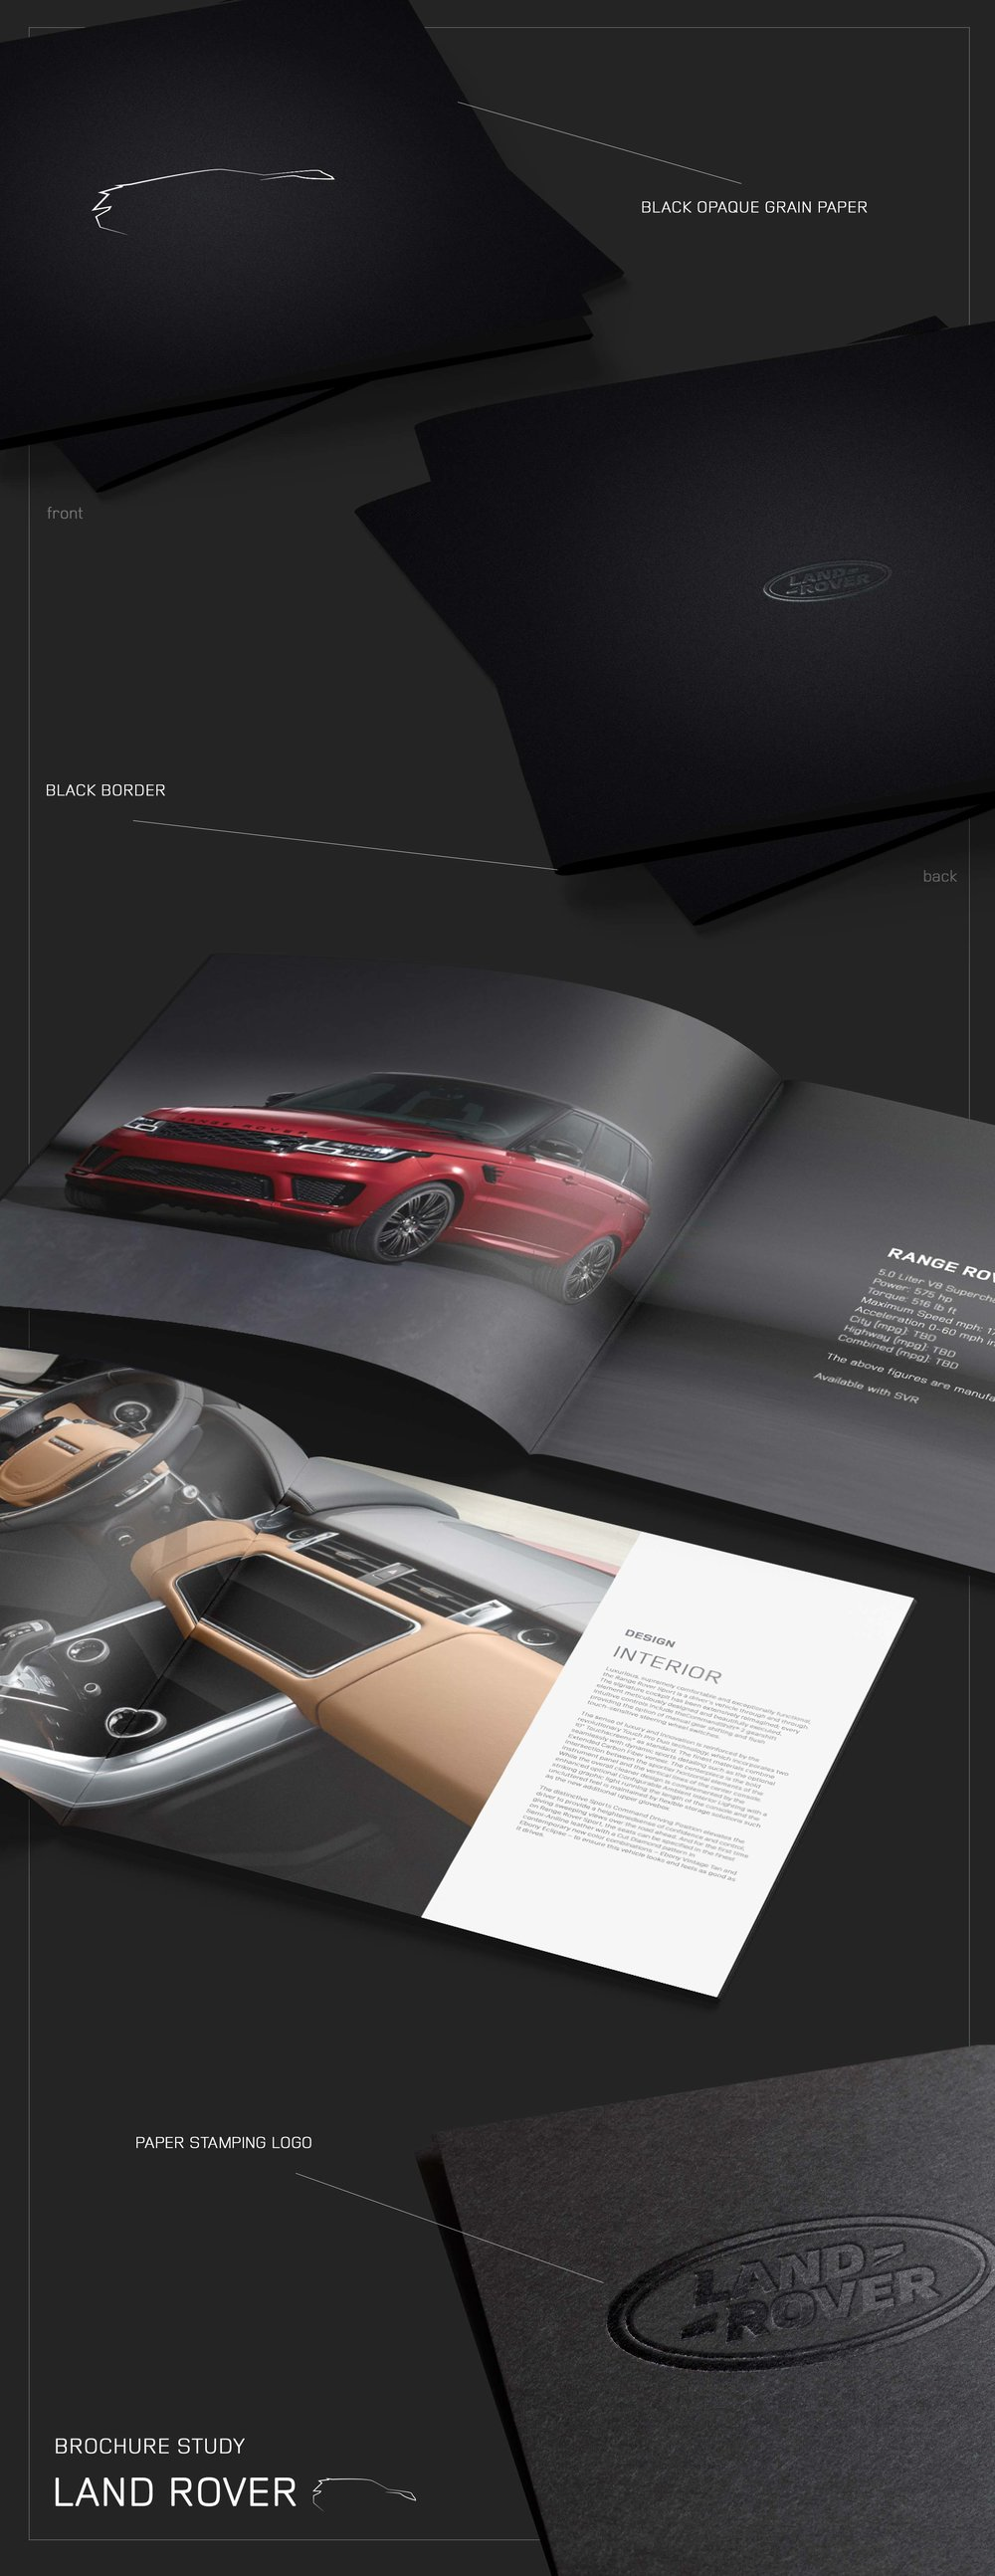 Land_Rover_board_brochure_study_1.jpg